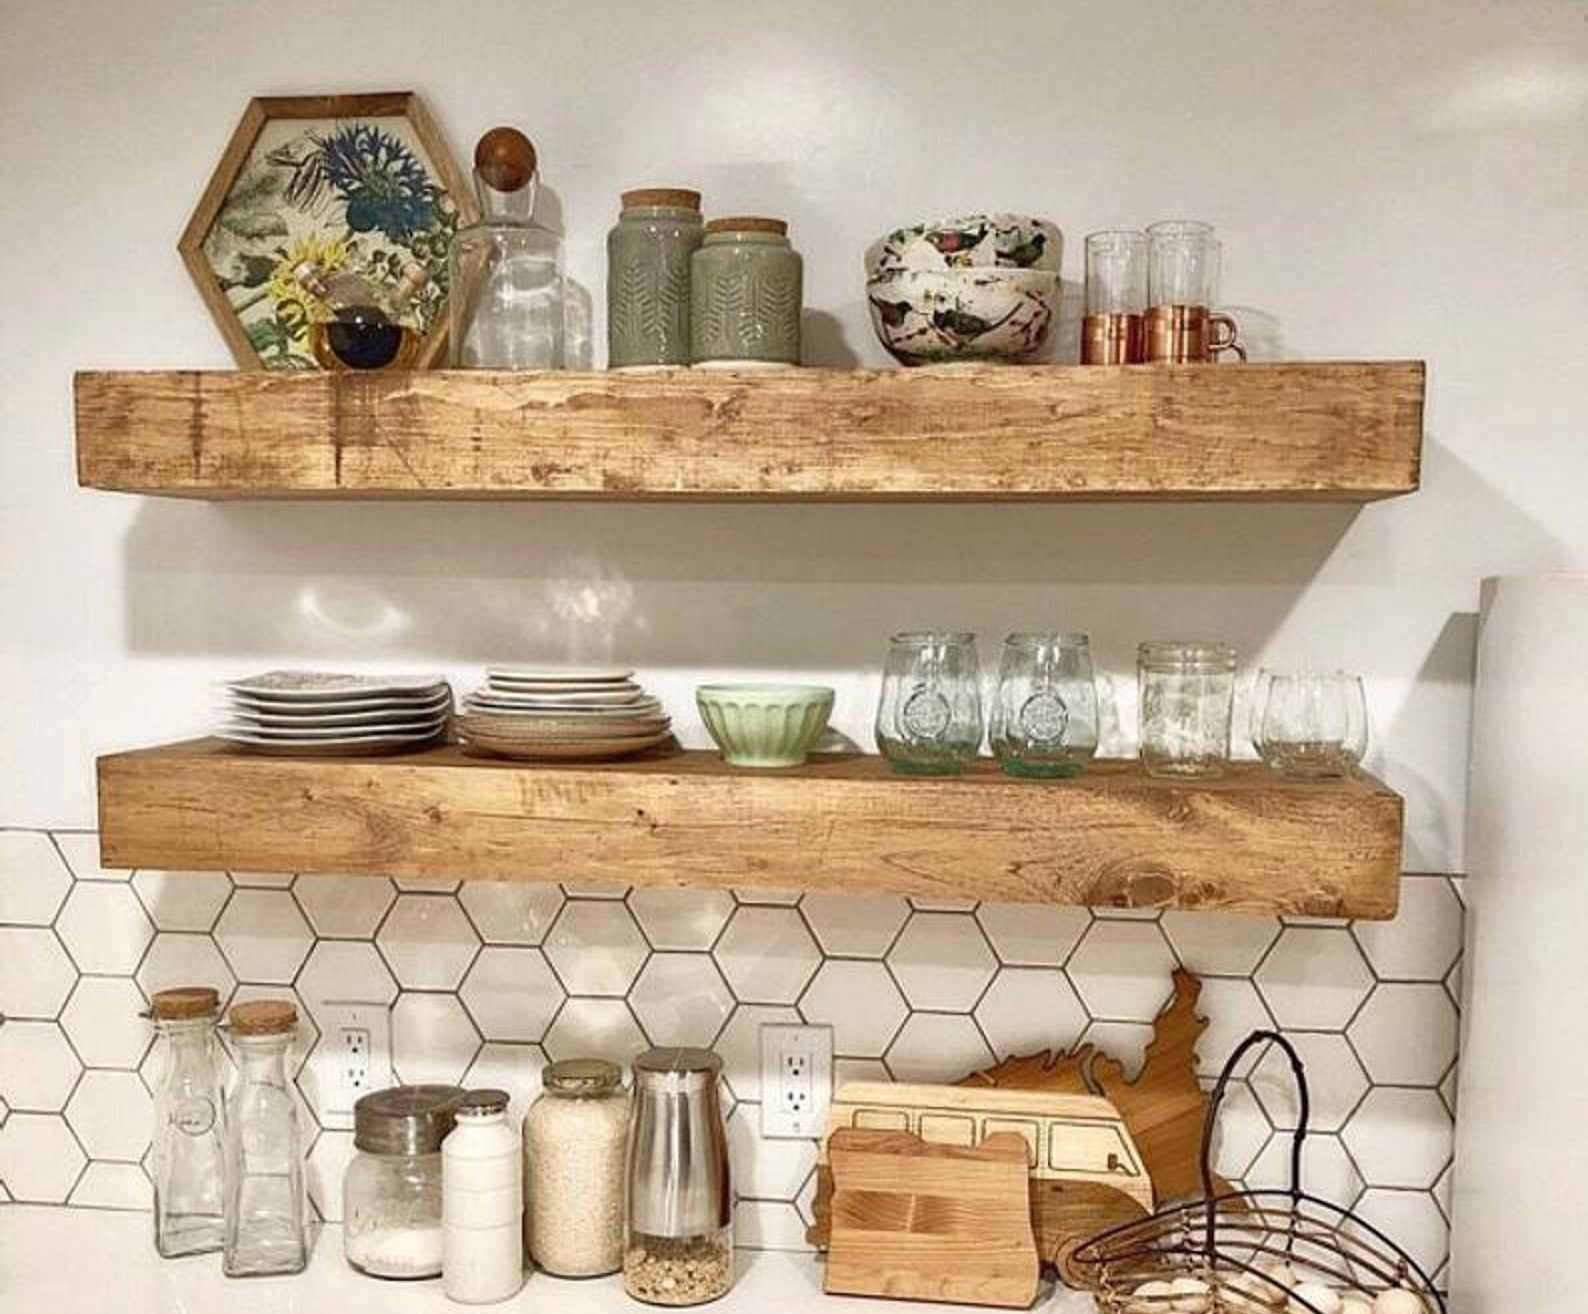 the wooden shelves hanging in a kitchen and holding things like dishes, cups, and decorative pieces